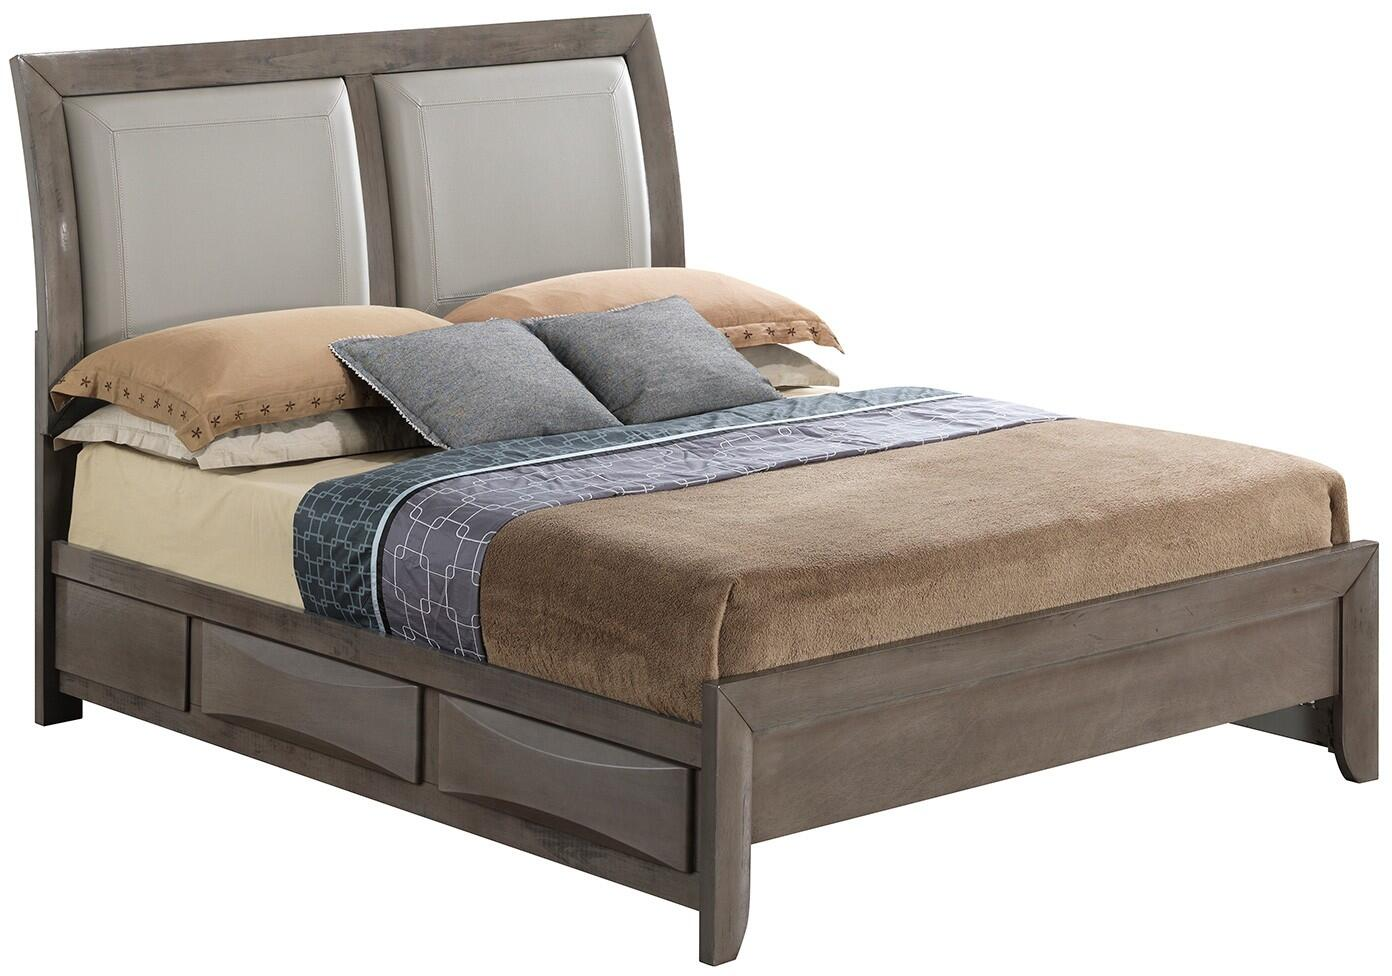 Glory furniture g1505ddksb2dmn g1505 king bedroom sets for Furniture connection